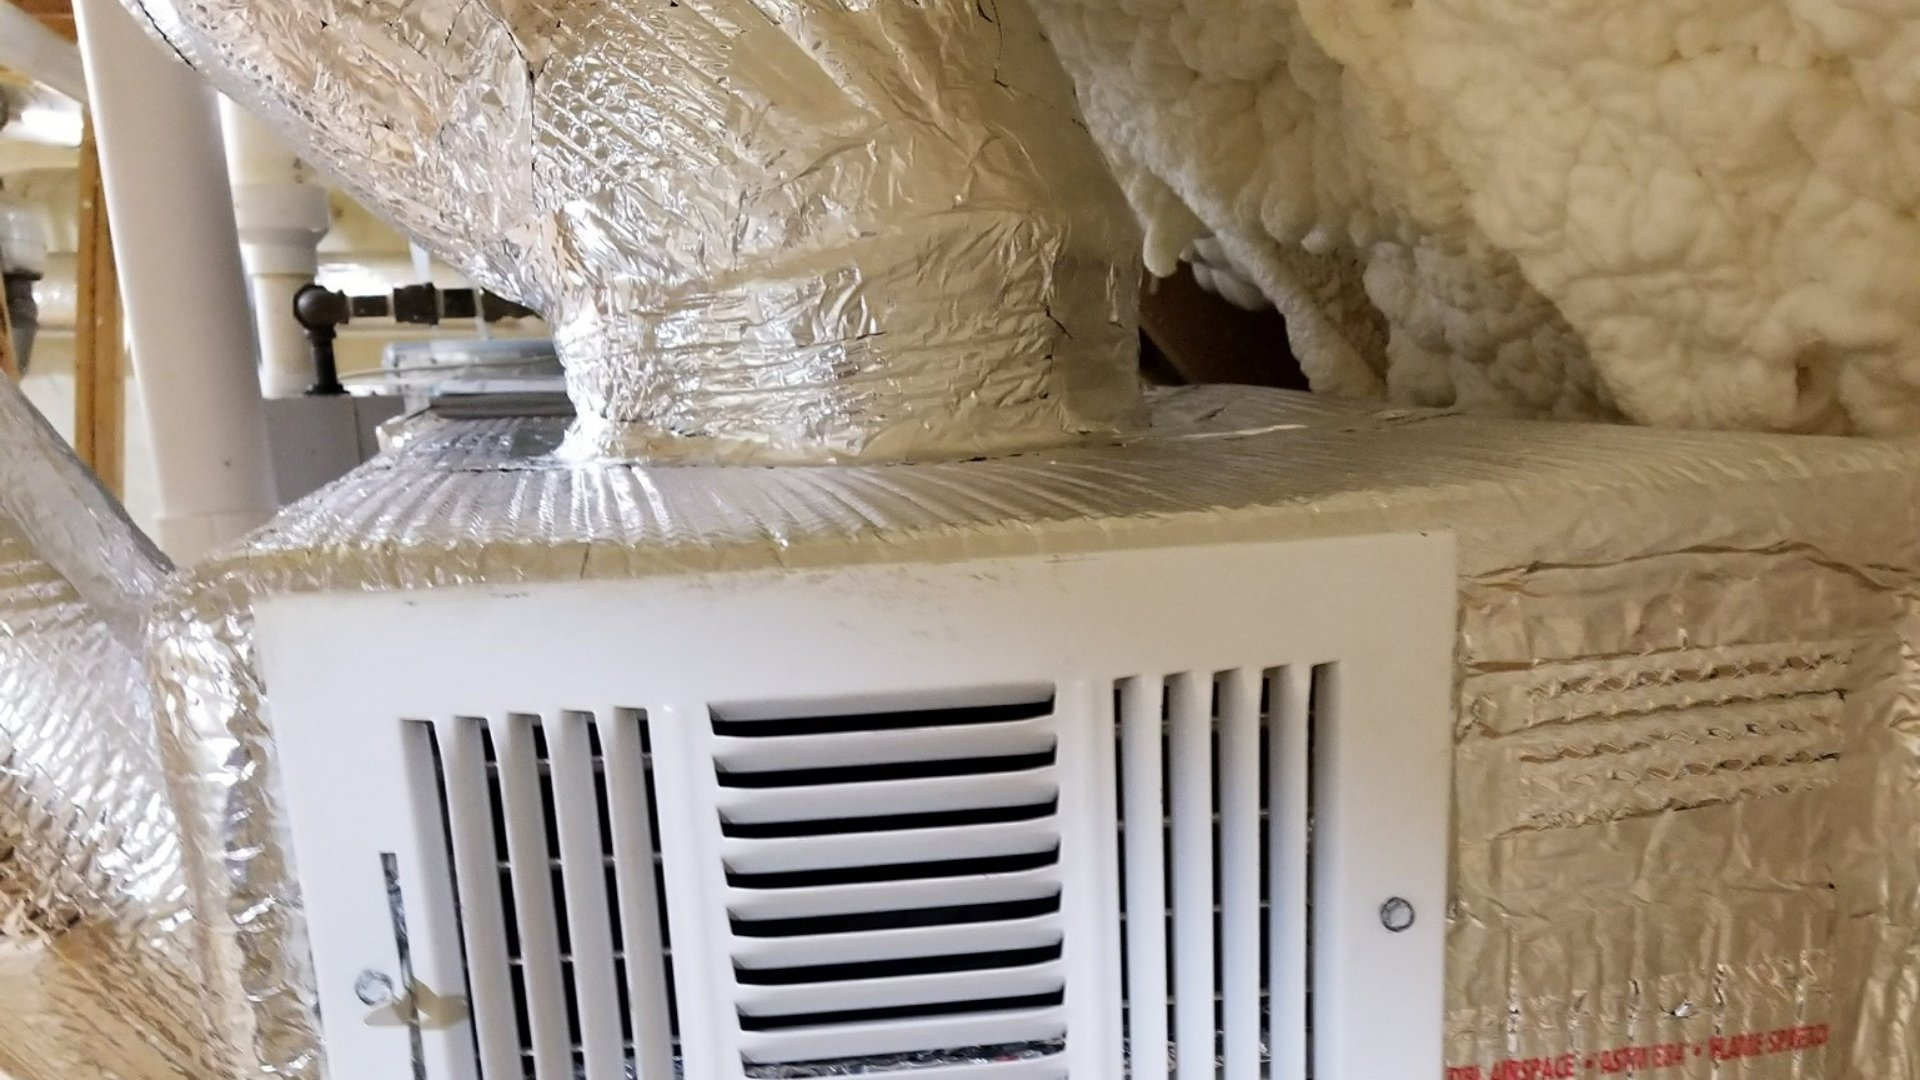 Duct Sealing Near Intake Vent - Page Gallery